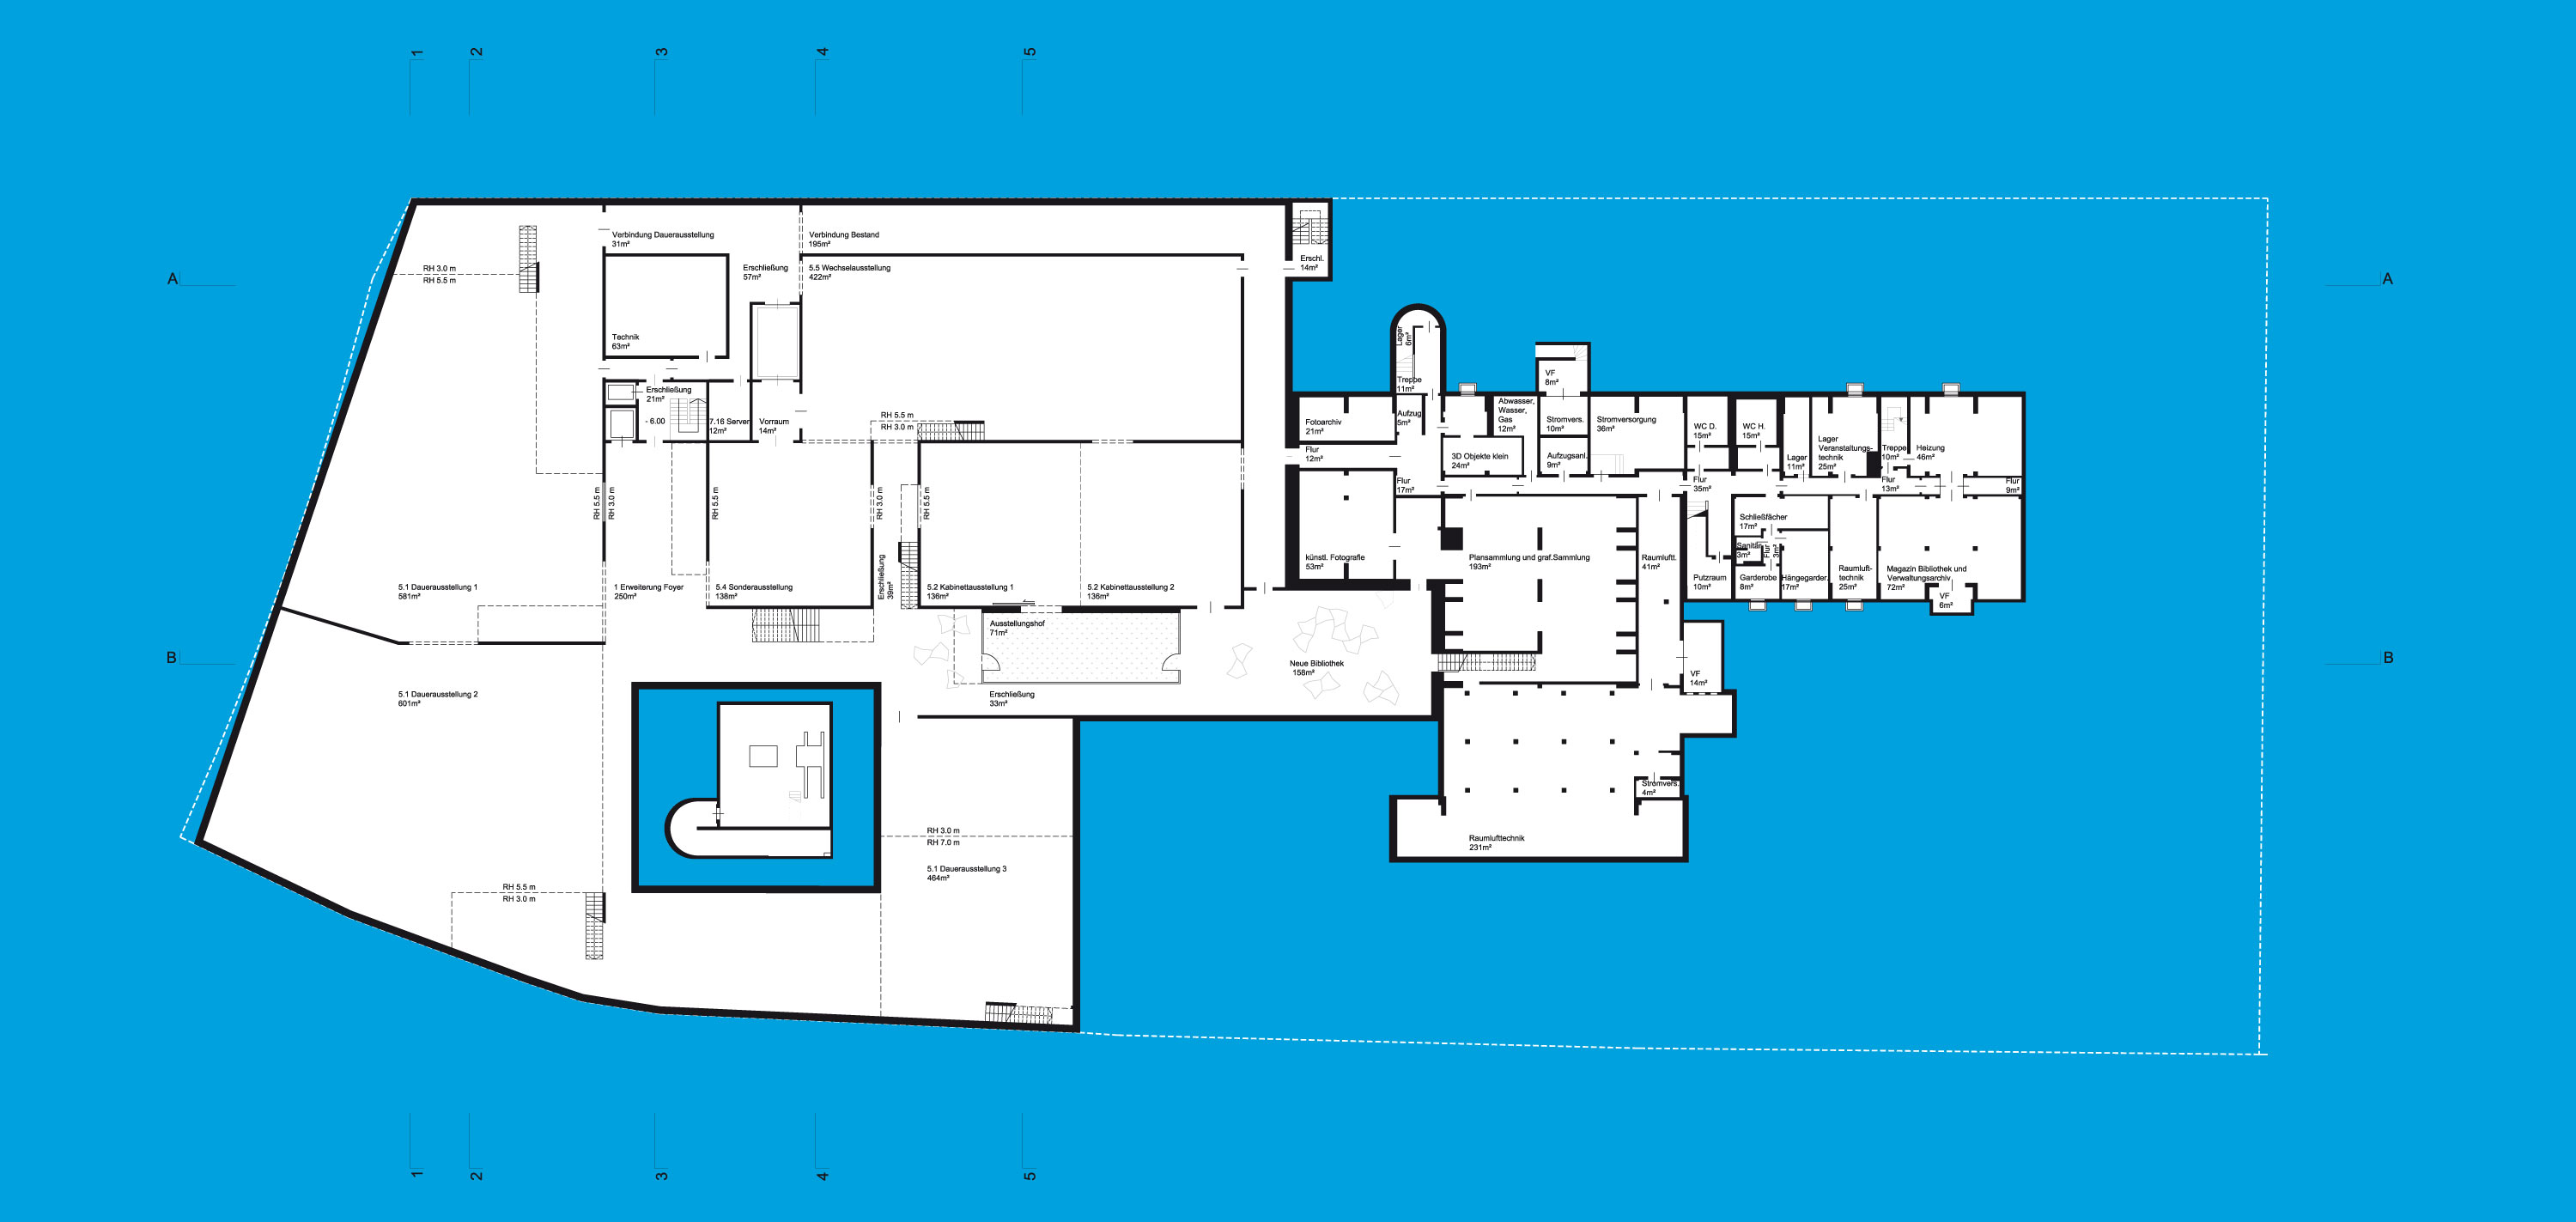 layout_bauhaus_floor_plan_1